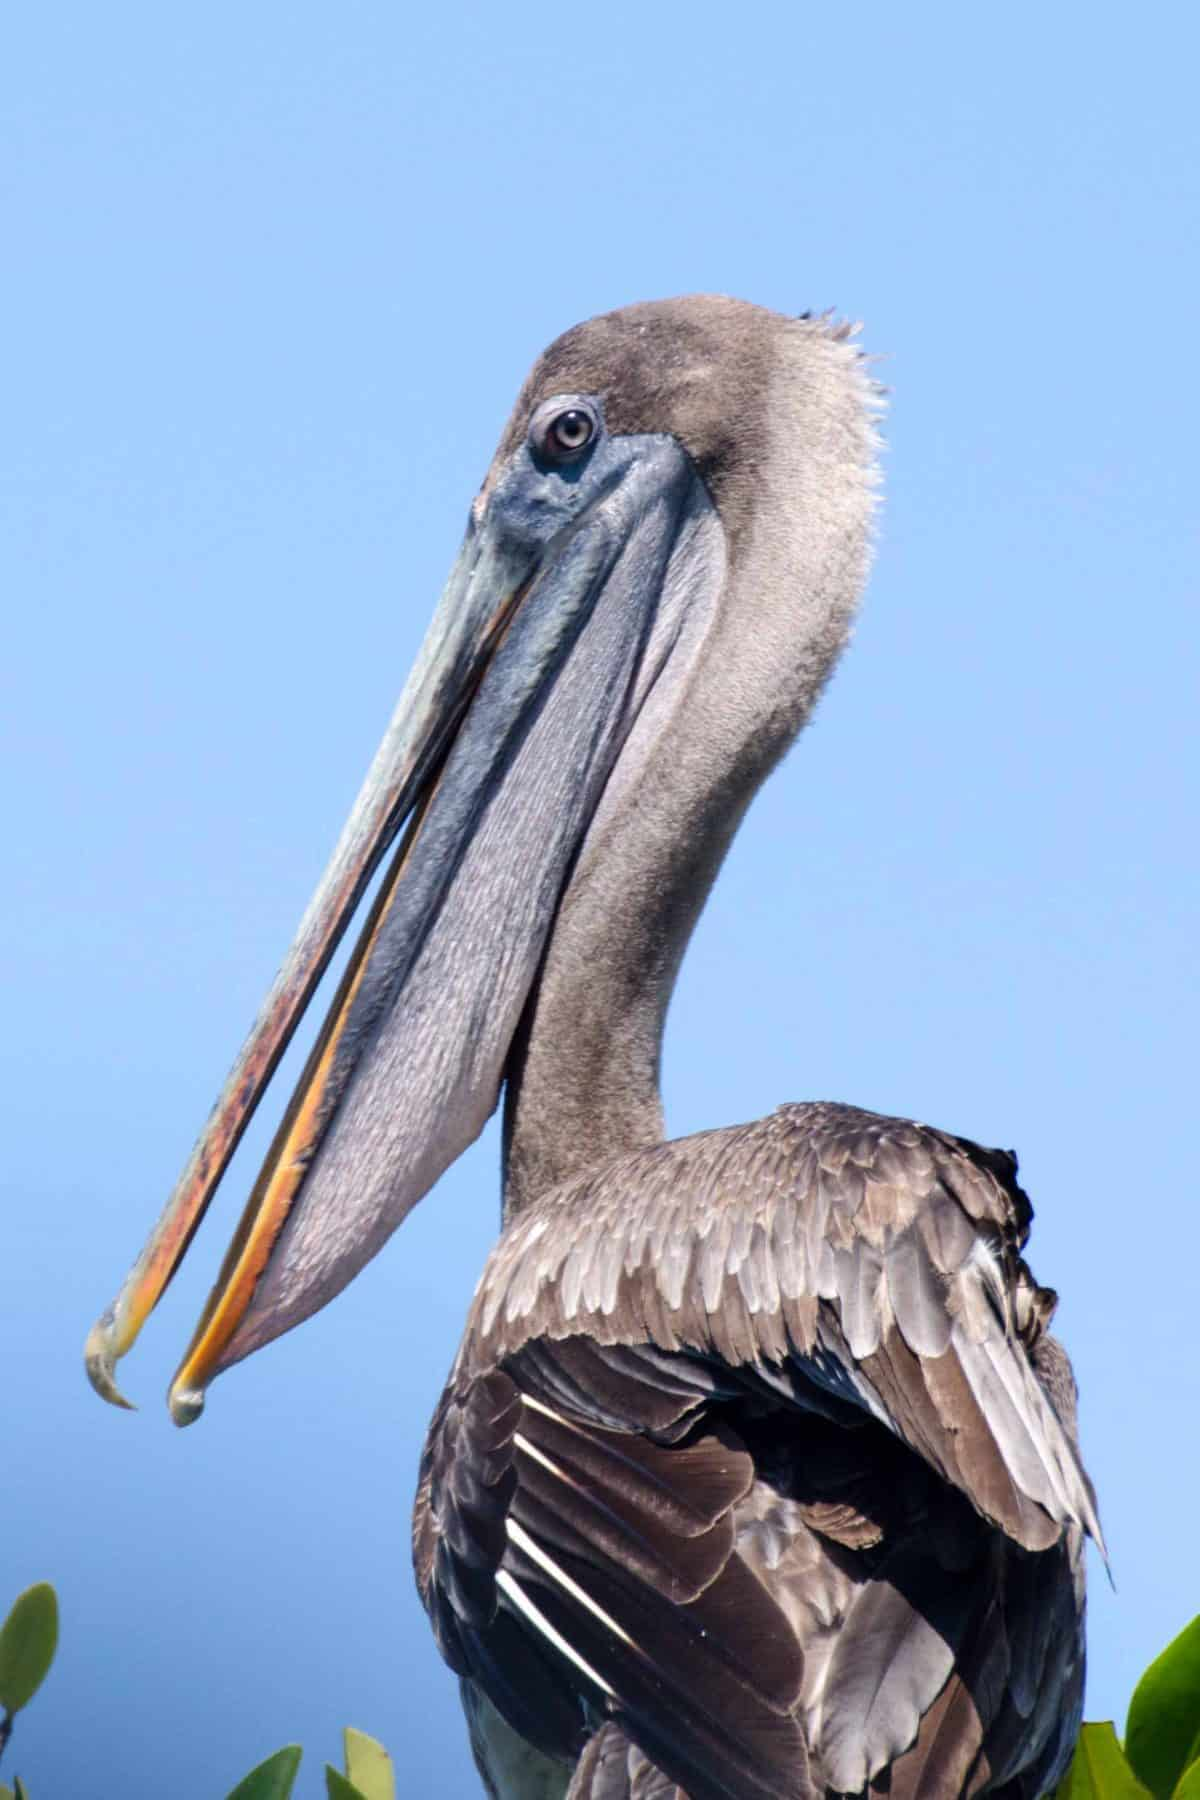 Brown Pelican, Isabela Island, The Galapagos, Ecuador | ©Angela Drake / Not Your Average American